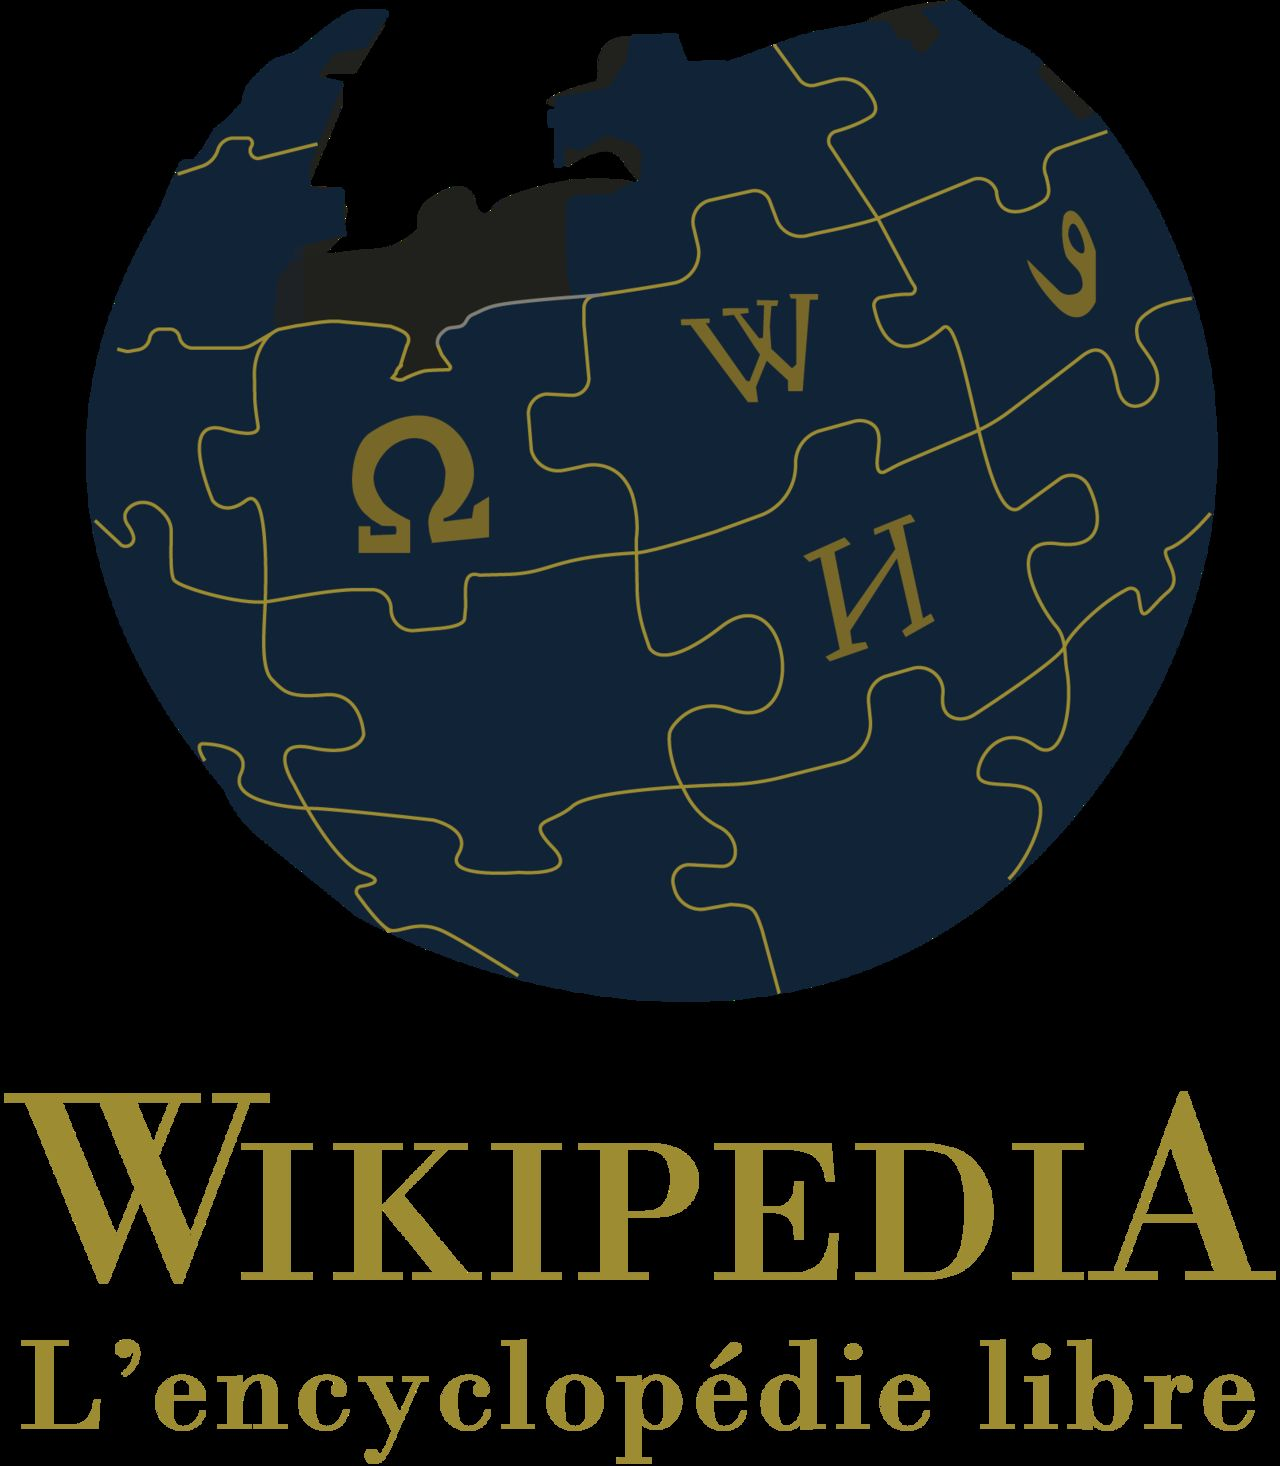 Illustration du logo Wikipedia revisité